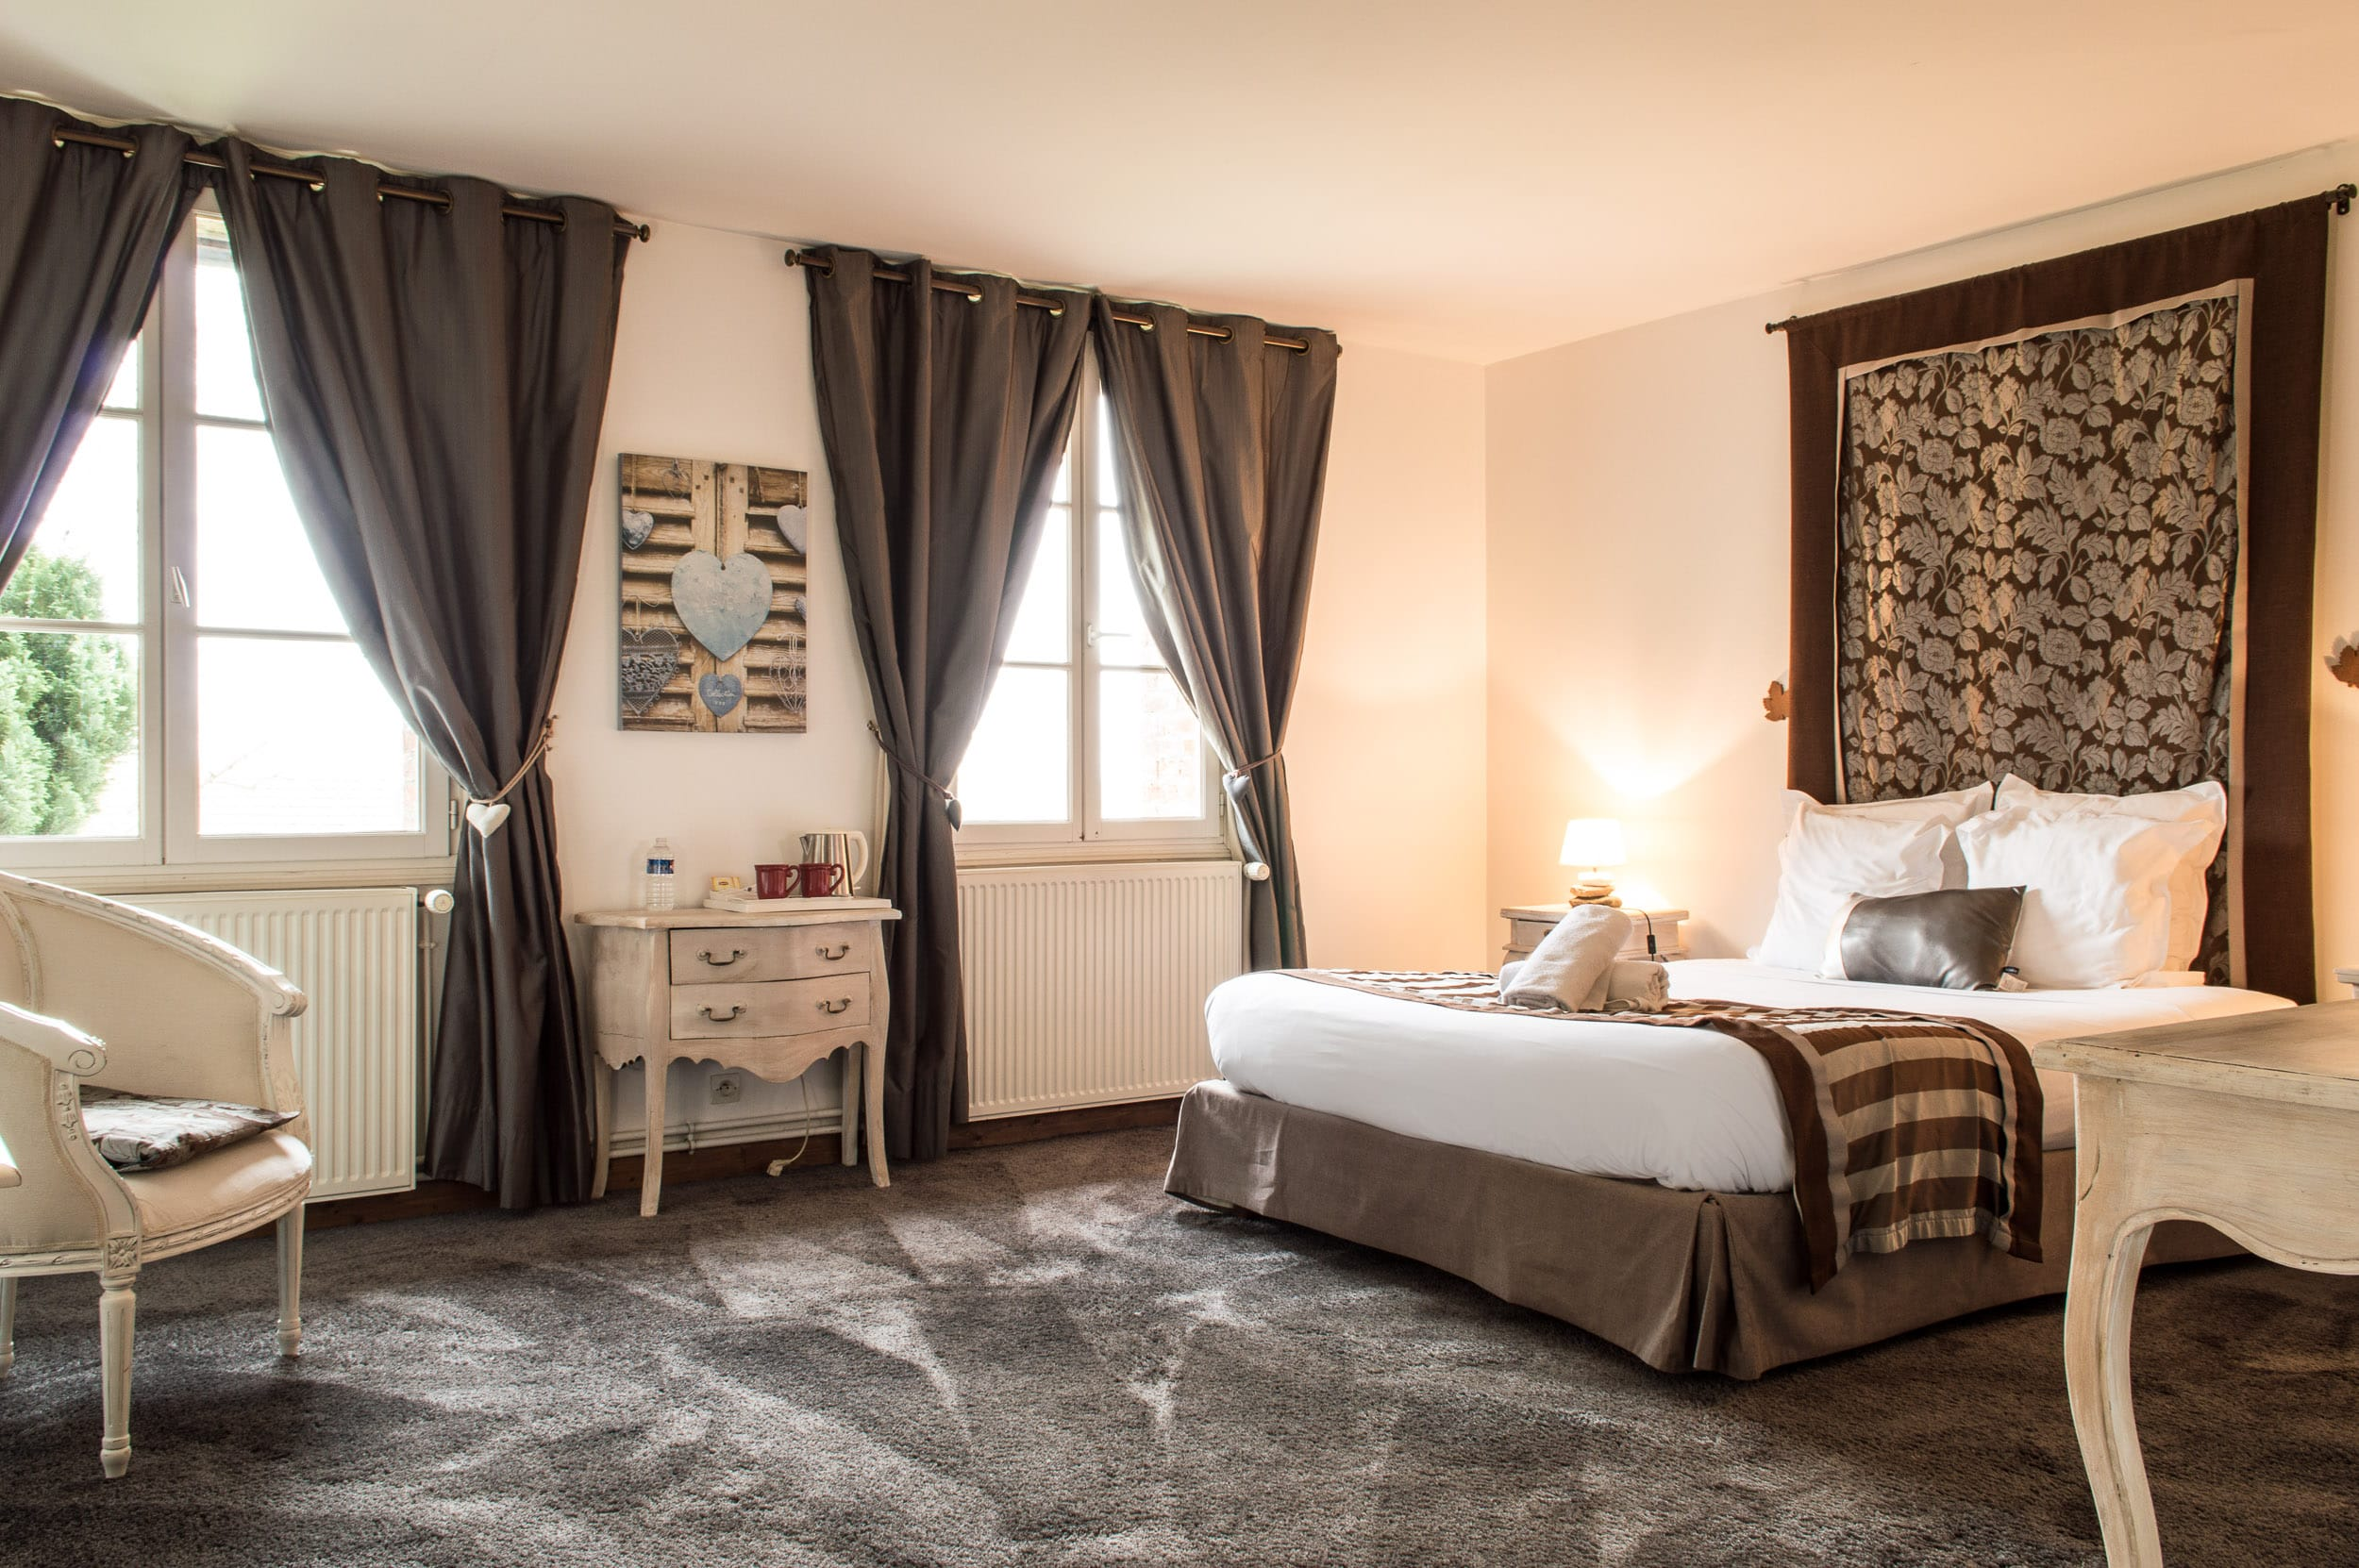 chambre noire weekend romantique avec jacuzzi 1 les granges haillancourt. Black Bedroom Furniture Sets. Home Design Ideas